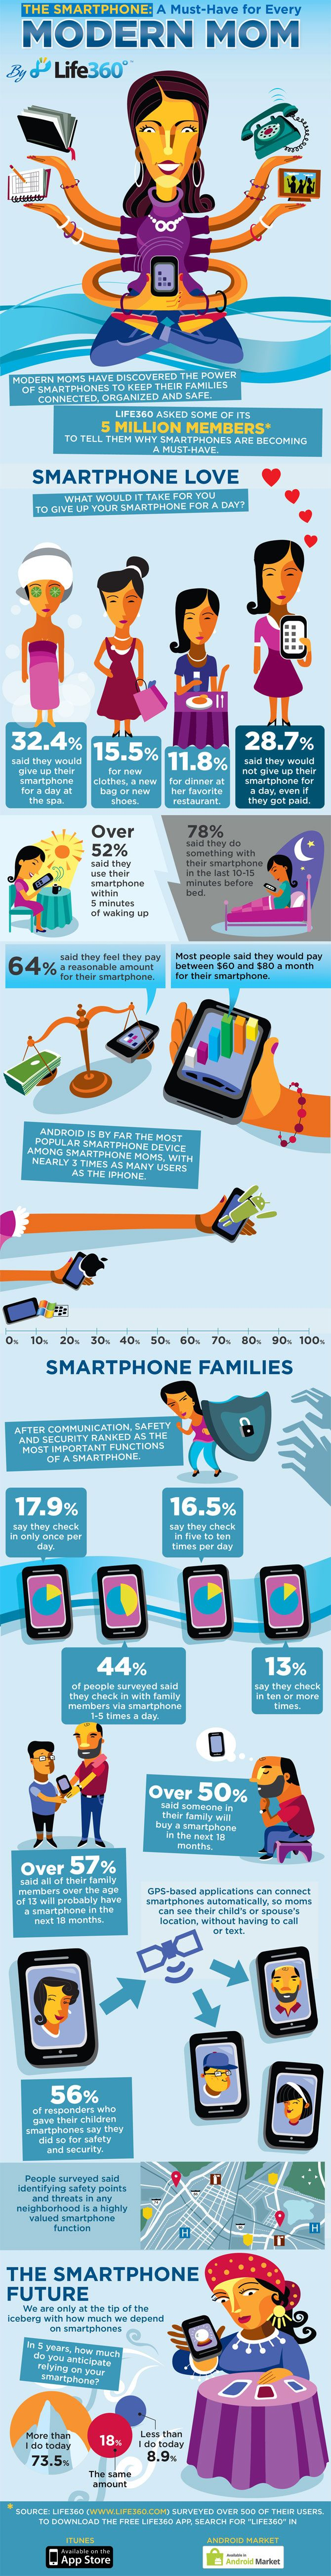 64 best Marketing to Moms images on Pinterest | Info graphics ...